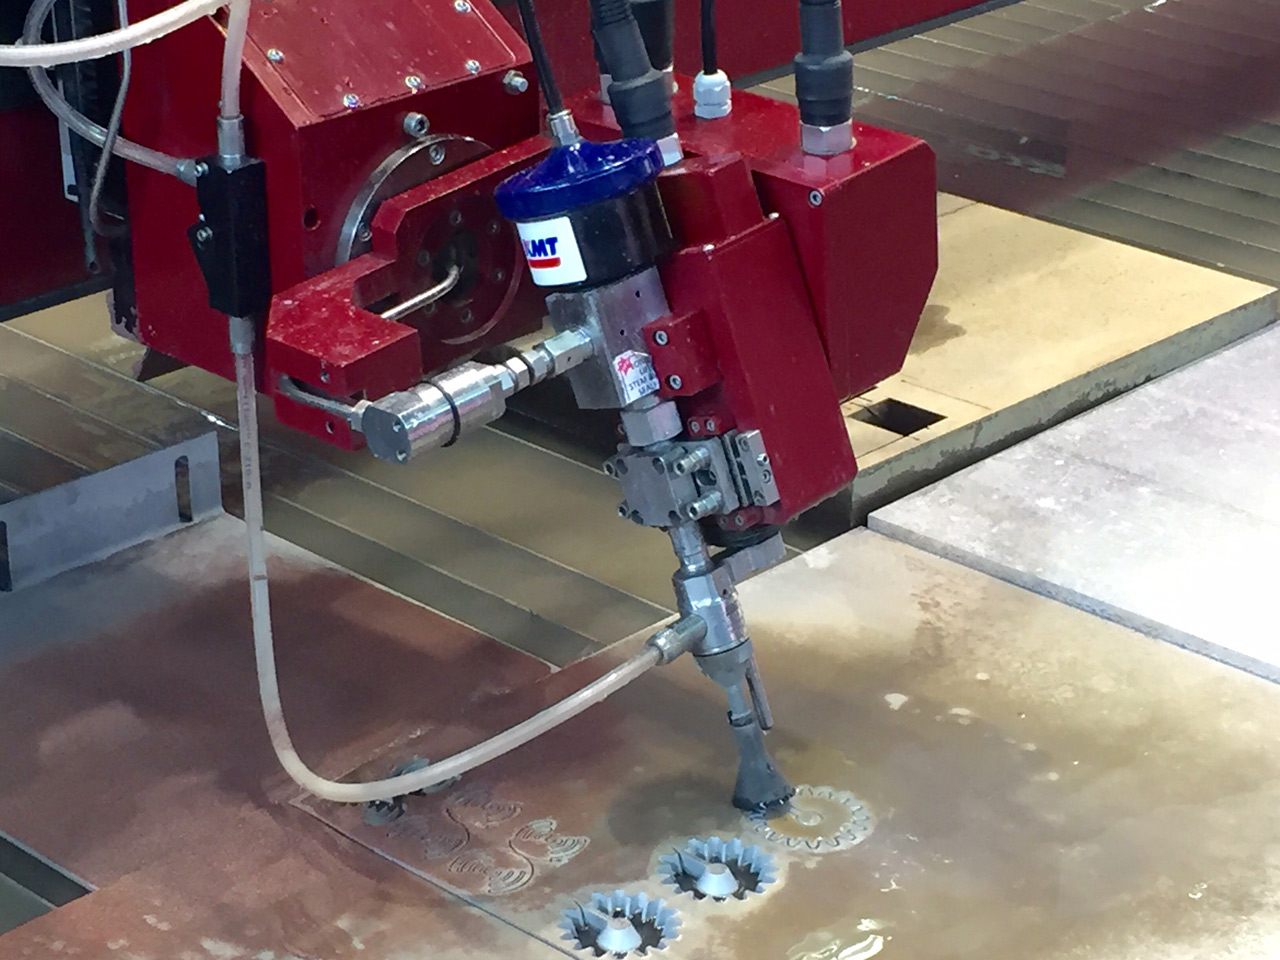 Waterjet 5-Axis Cutting Head in Action